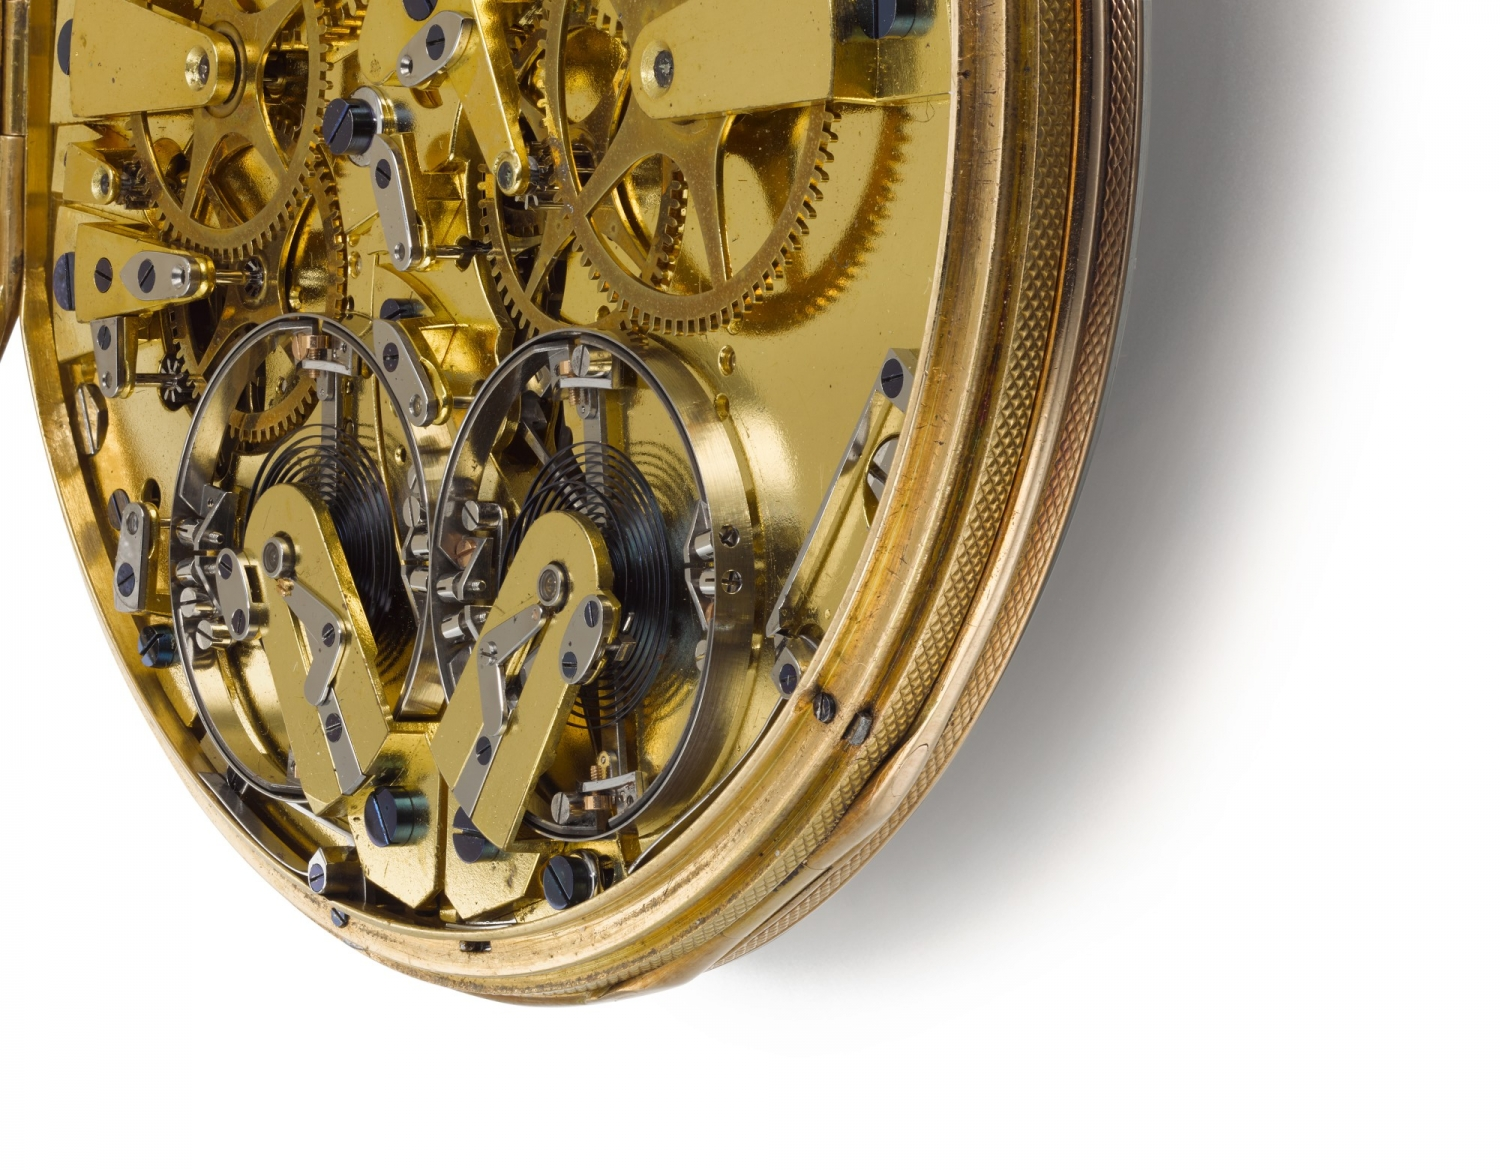 Breguet pocket watch No. 2788 dated 1812 two resonating escapement